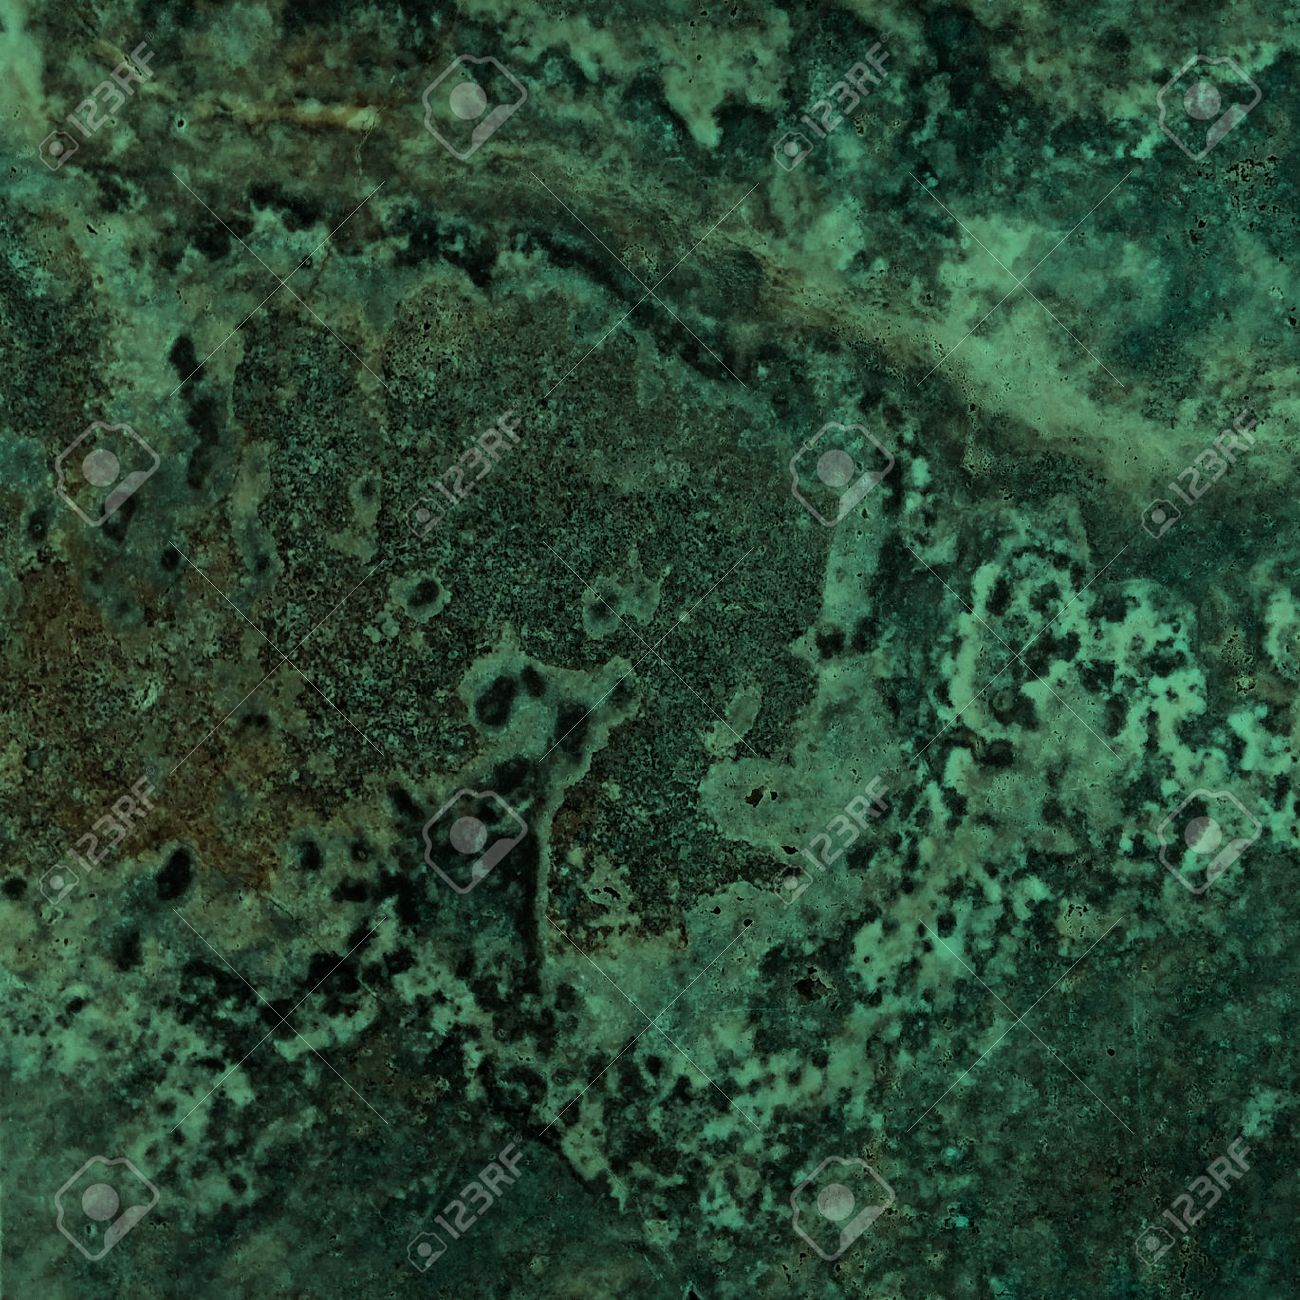 Green Marble Texture High Resolution Stock Photo Picture And Royalty Free Image Image 28432262